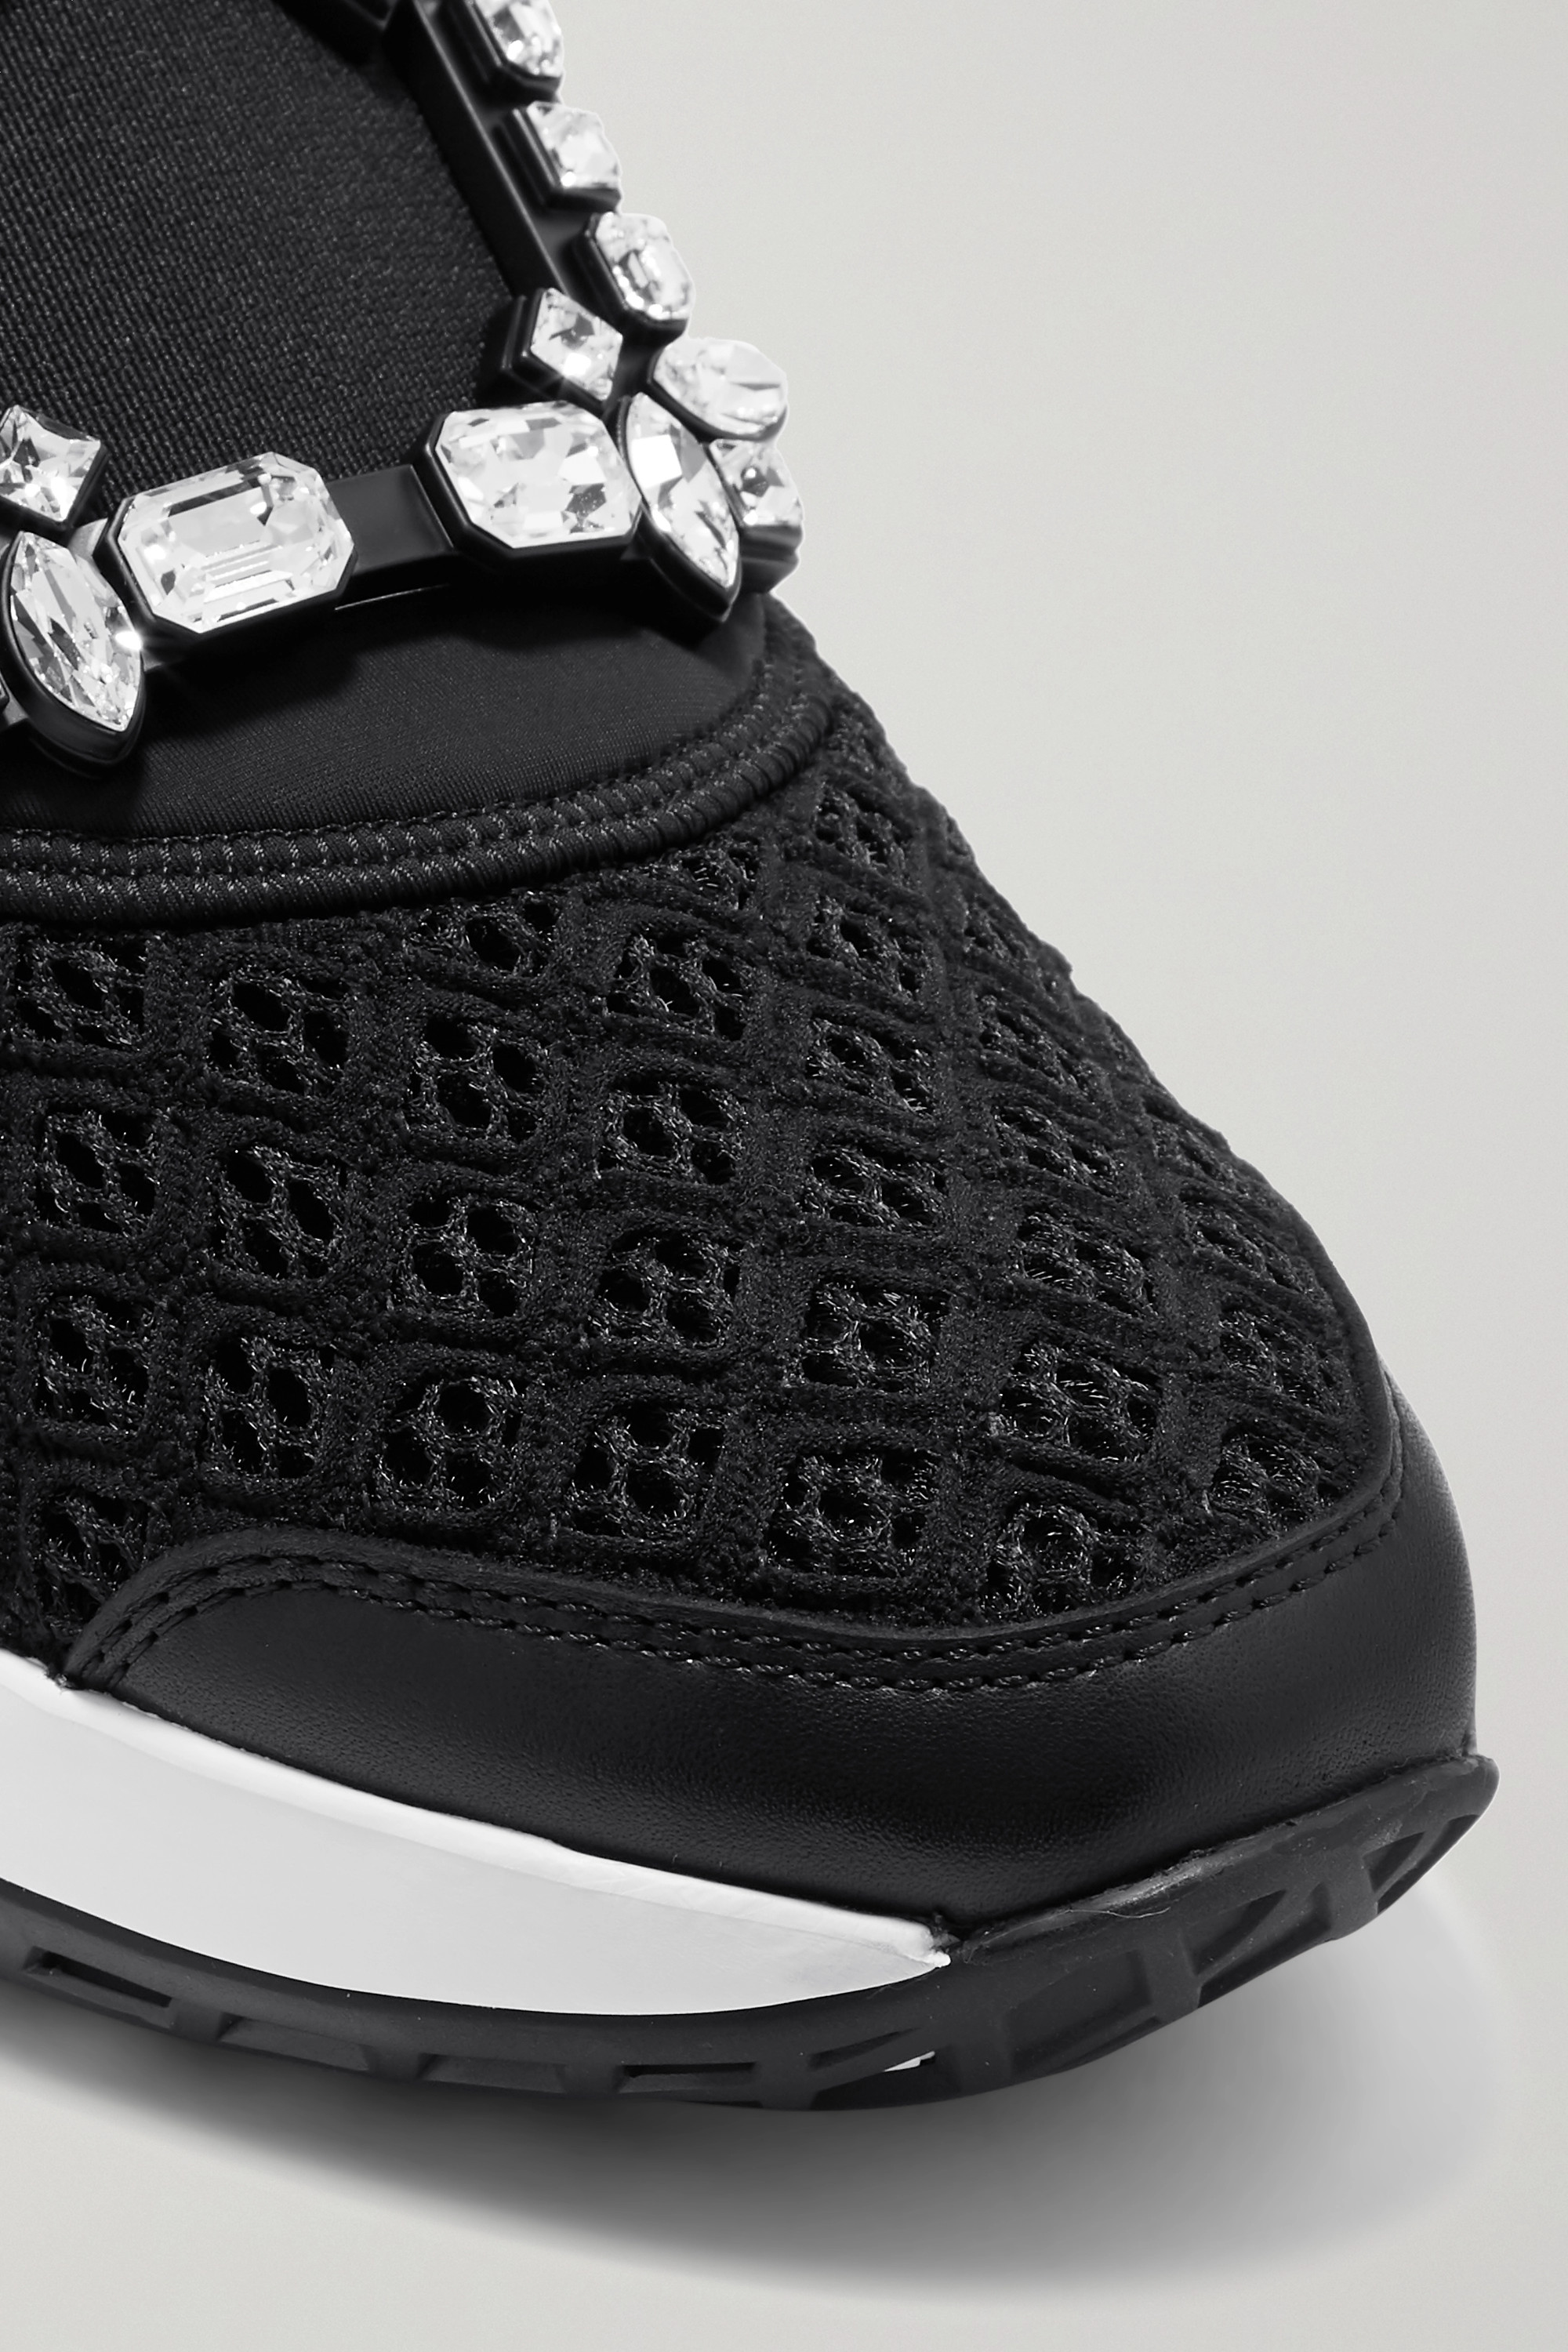 Roger Vivier Viv Run crystal-embellished neoprene, mesh and leather sneakers